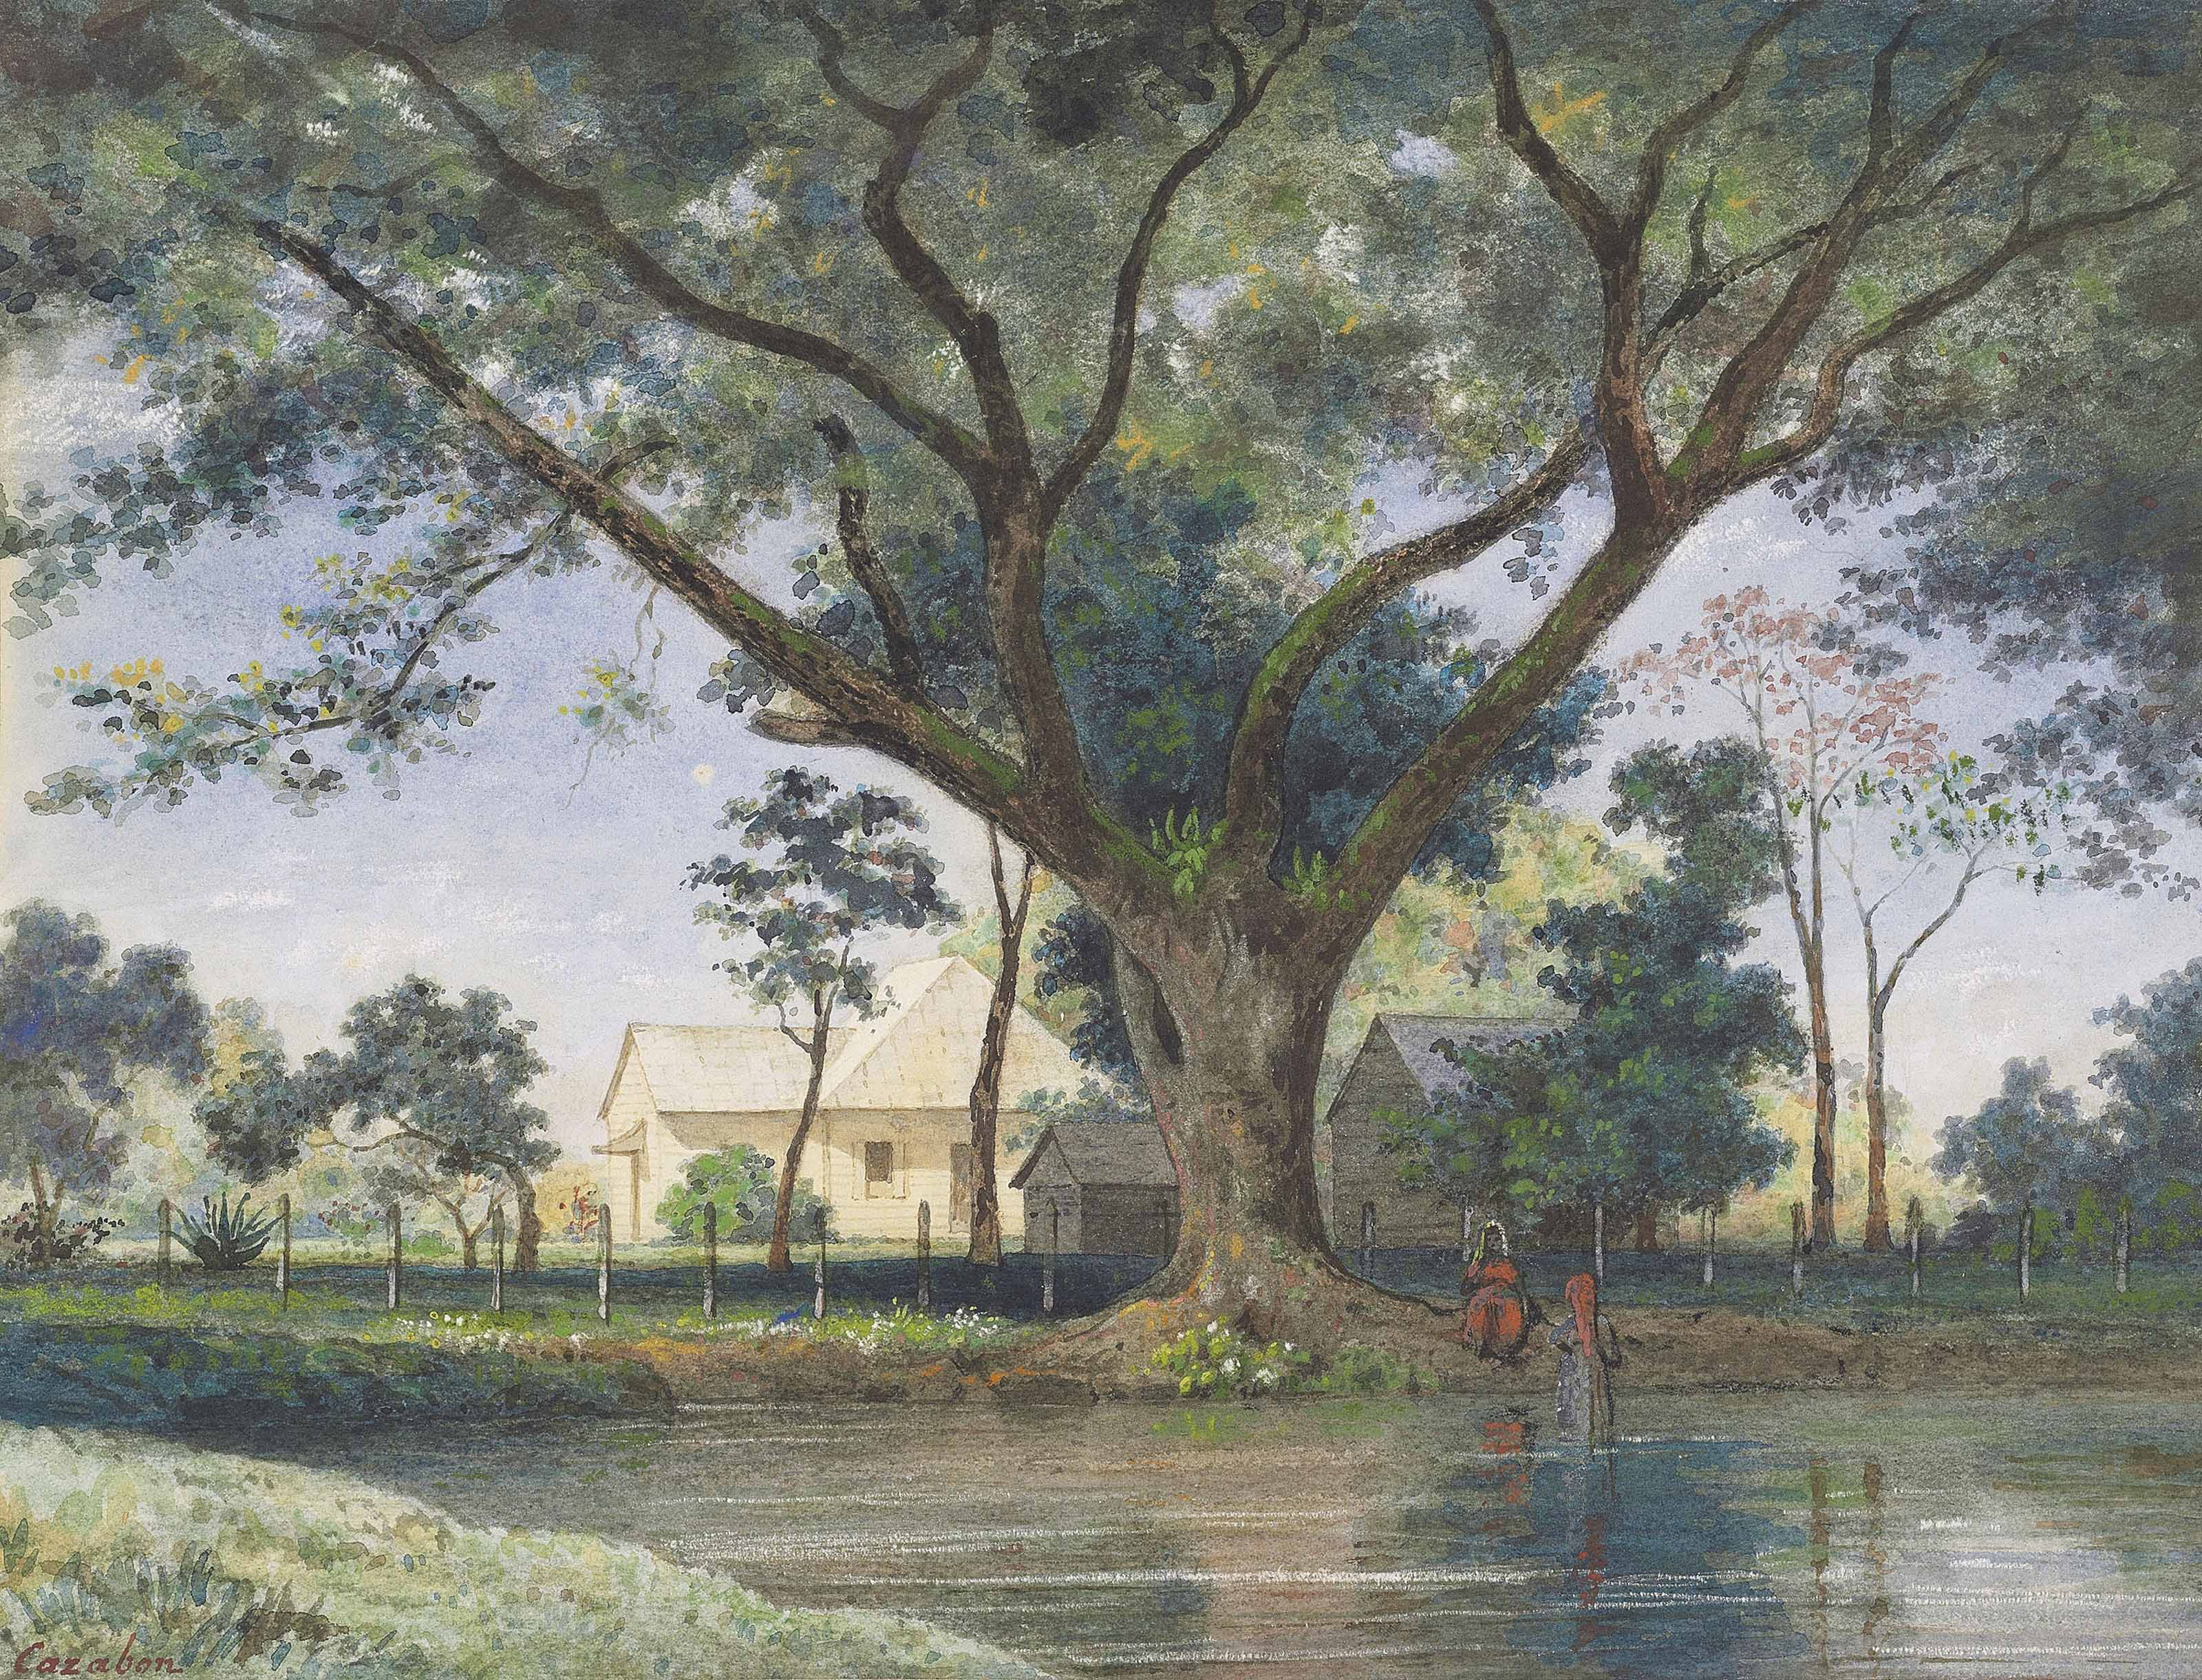 Figures bathing in a pool, plantation houses beyond, Trinidad